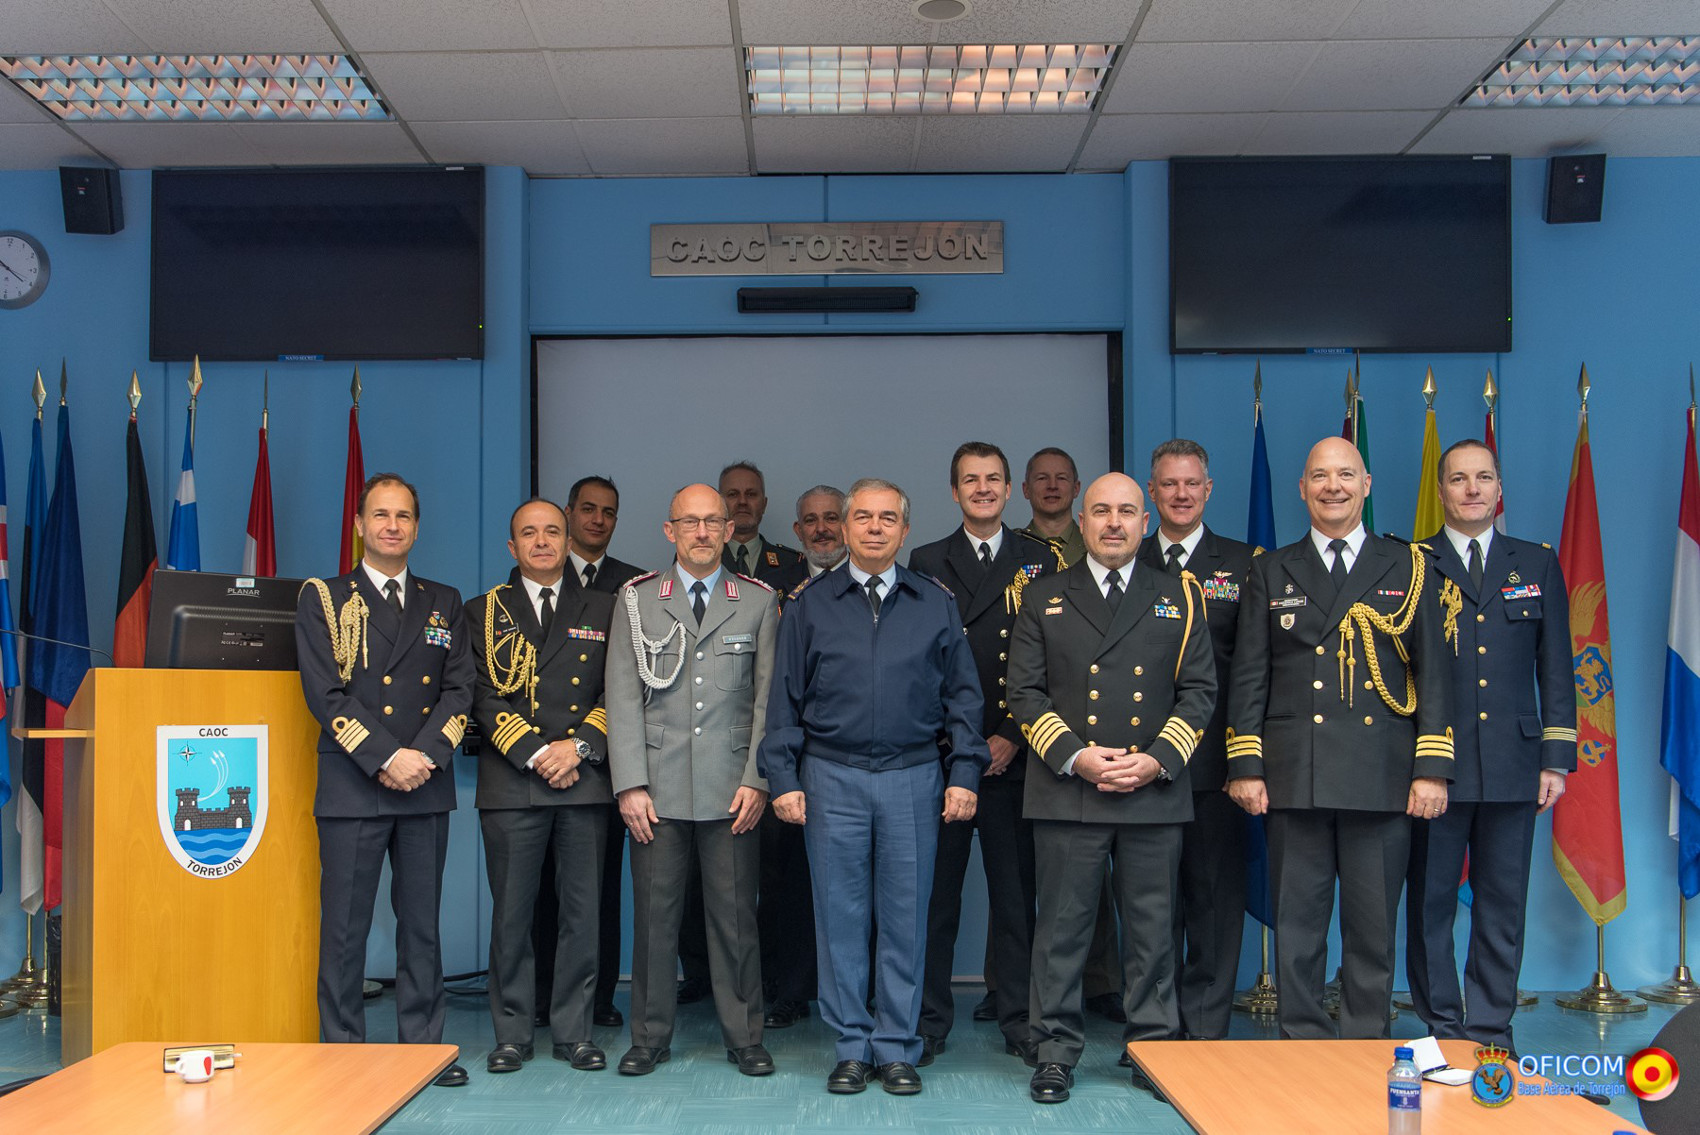 Defence attachés from NATO member countries visit the Combined Air Operations Centre in Torrejón